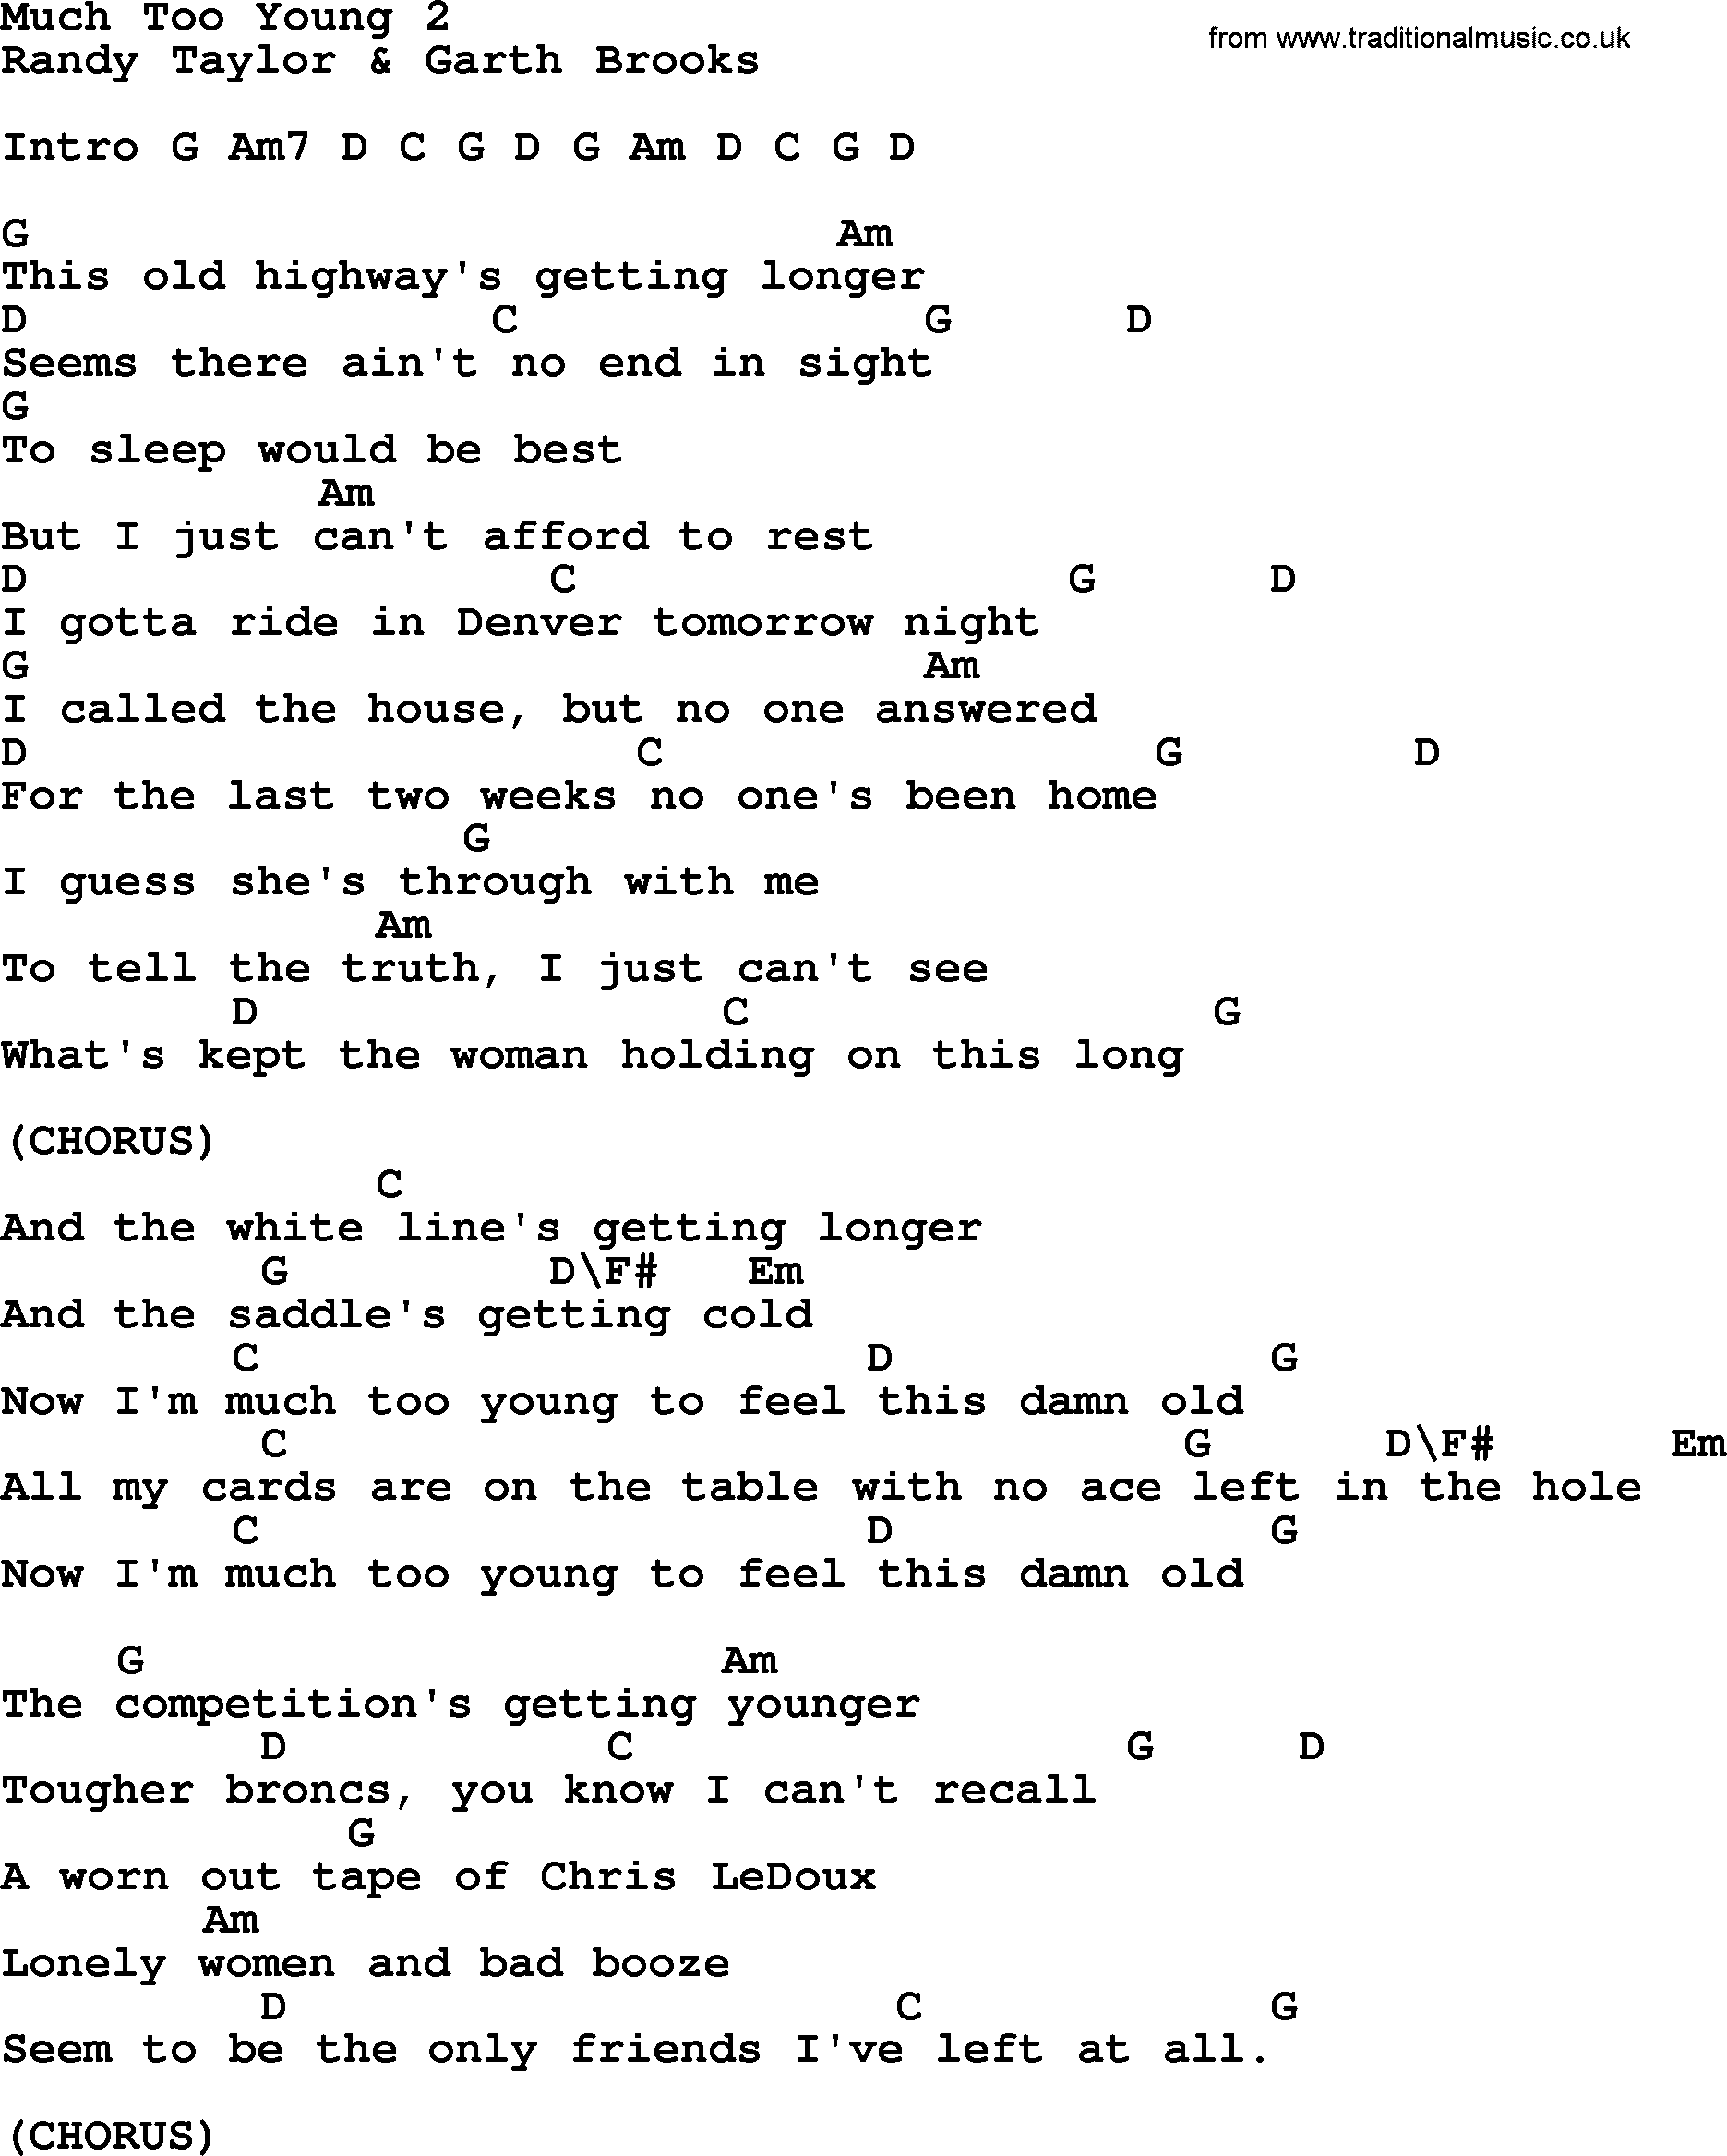 Much Too Young 15, by Garth Brooks   lyrics and chords